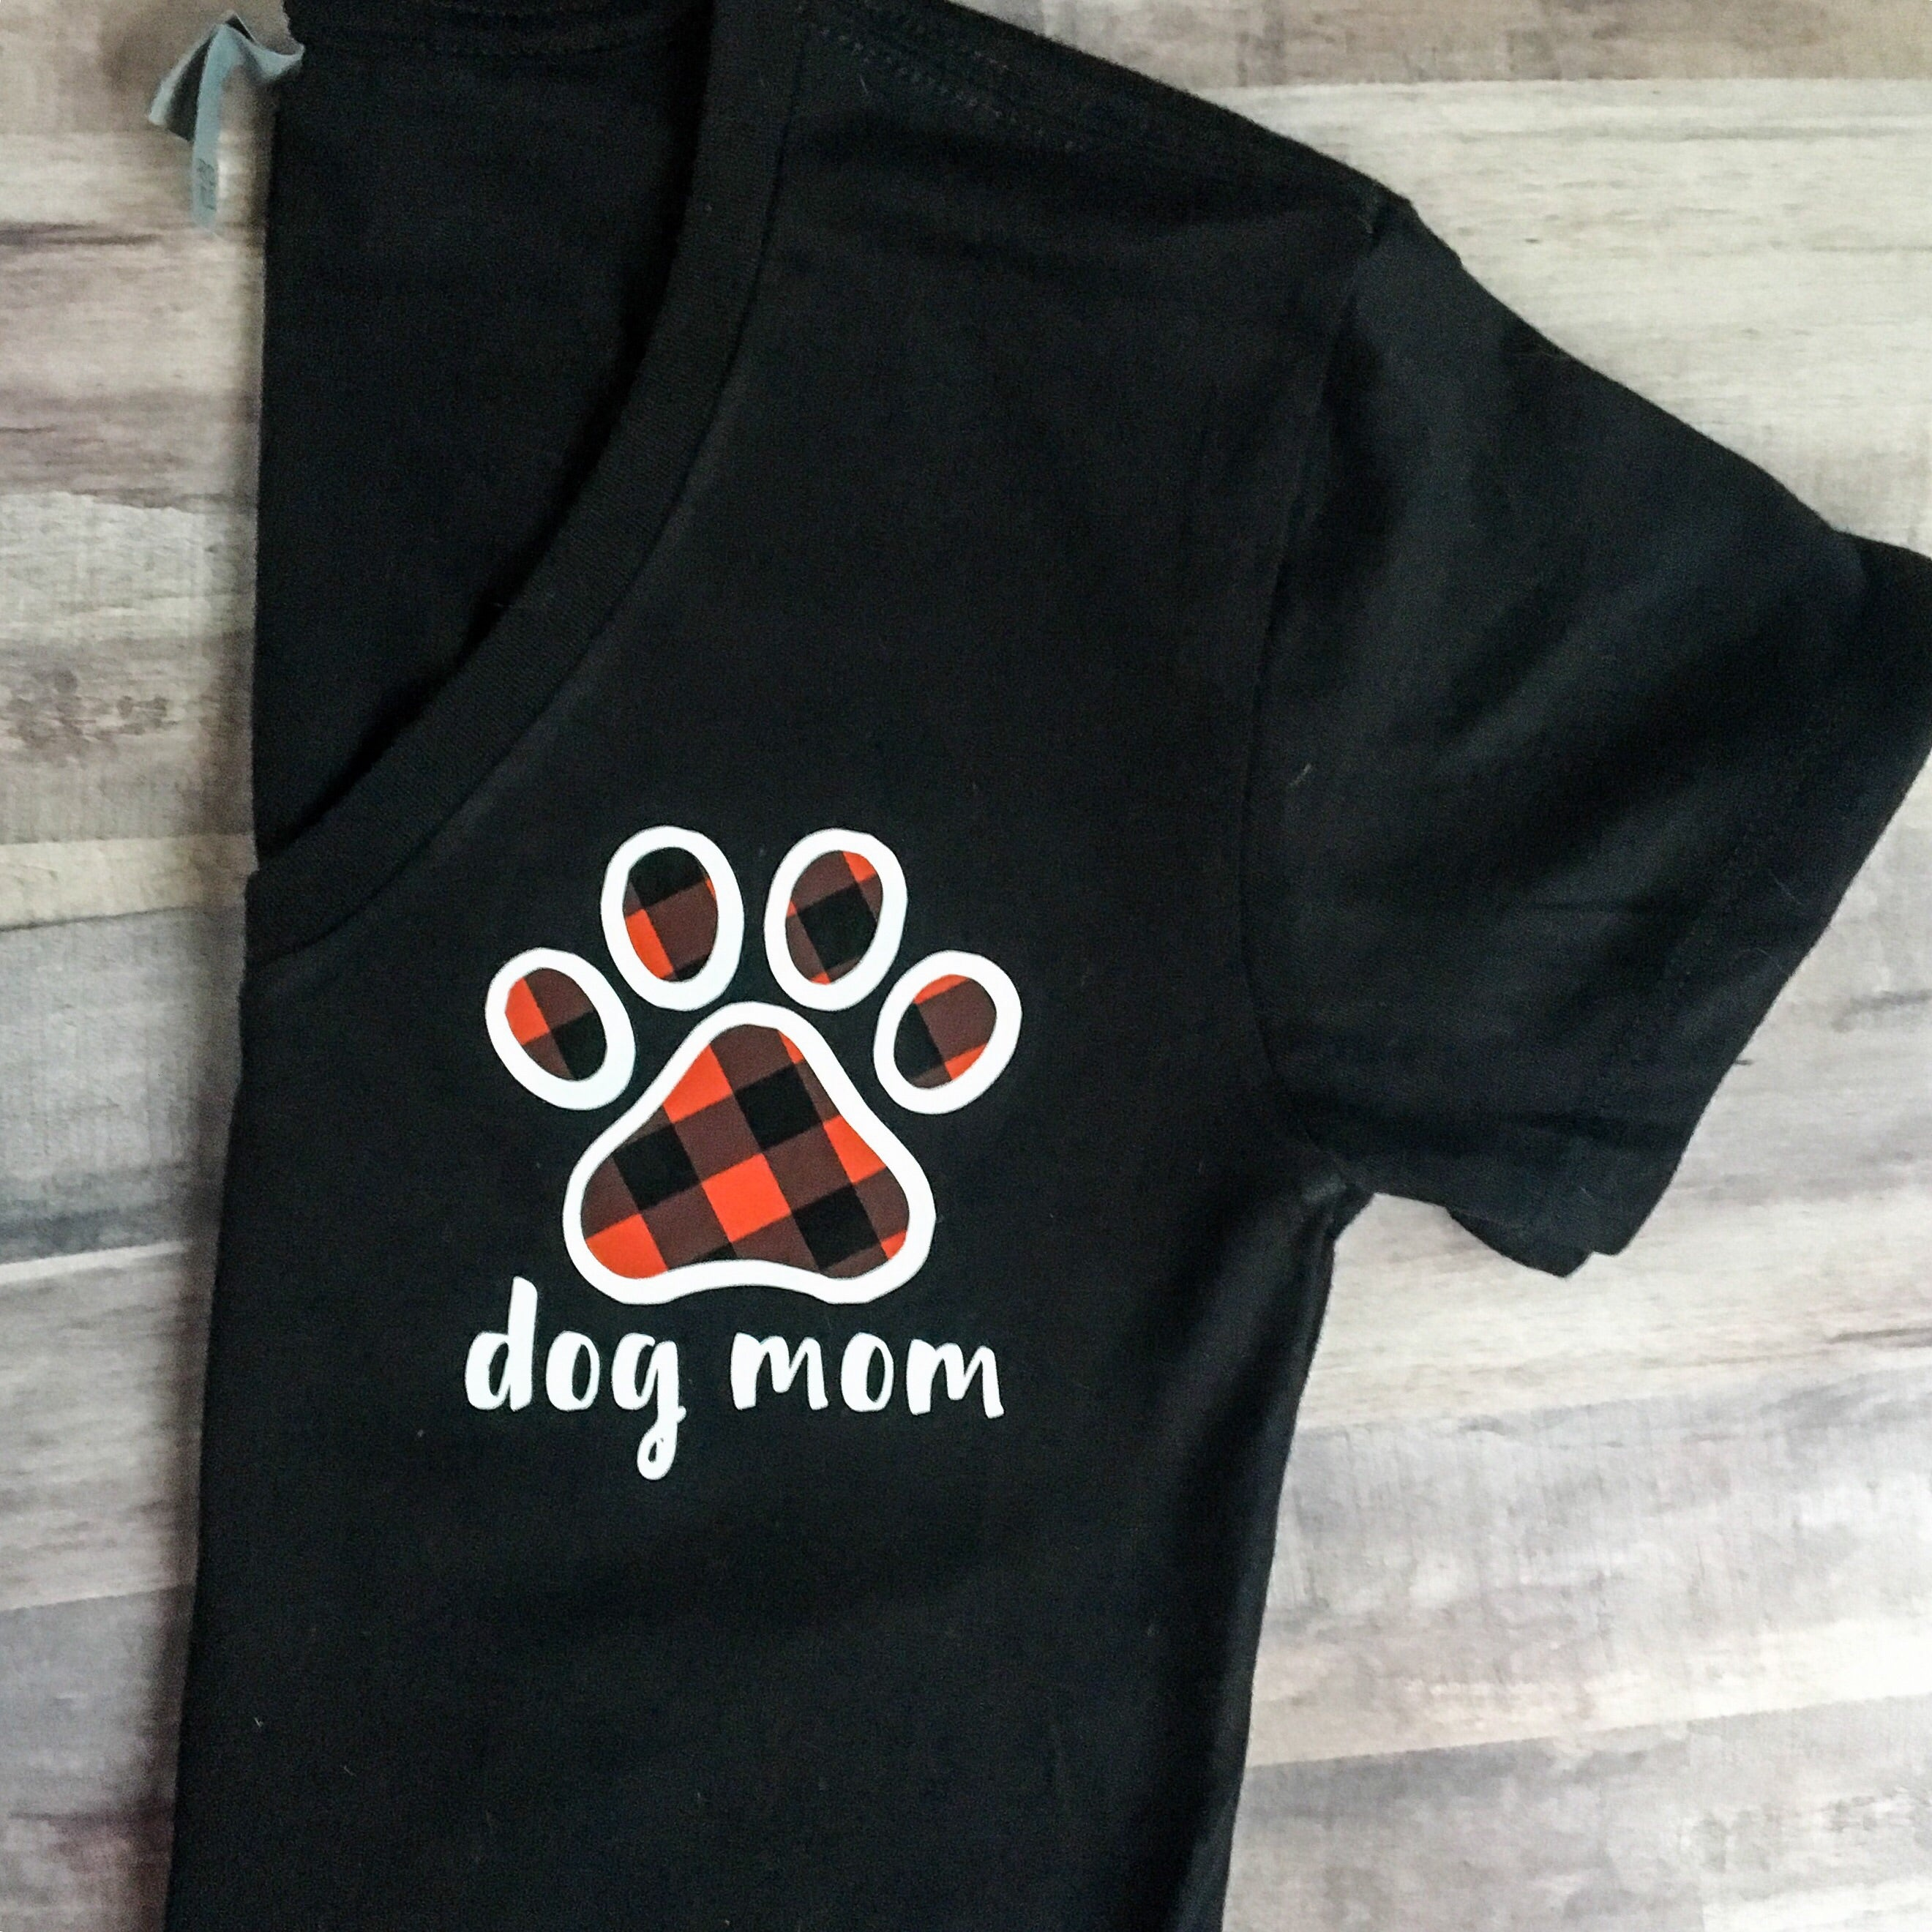 Black relaxed v Buffalo plaid paw Dog mom relaxed fit v neck t shirt